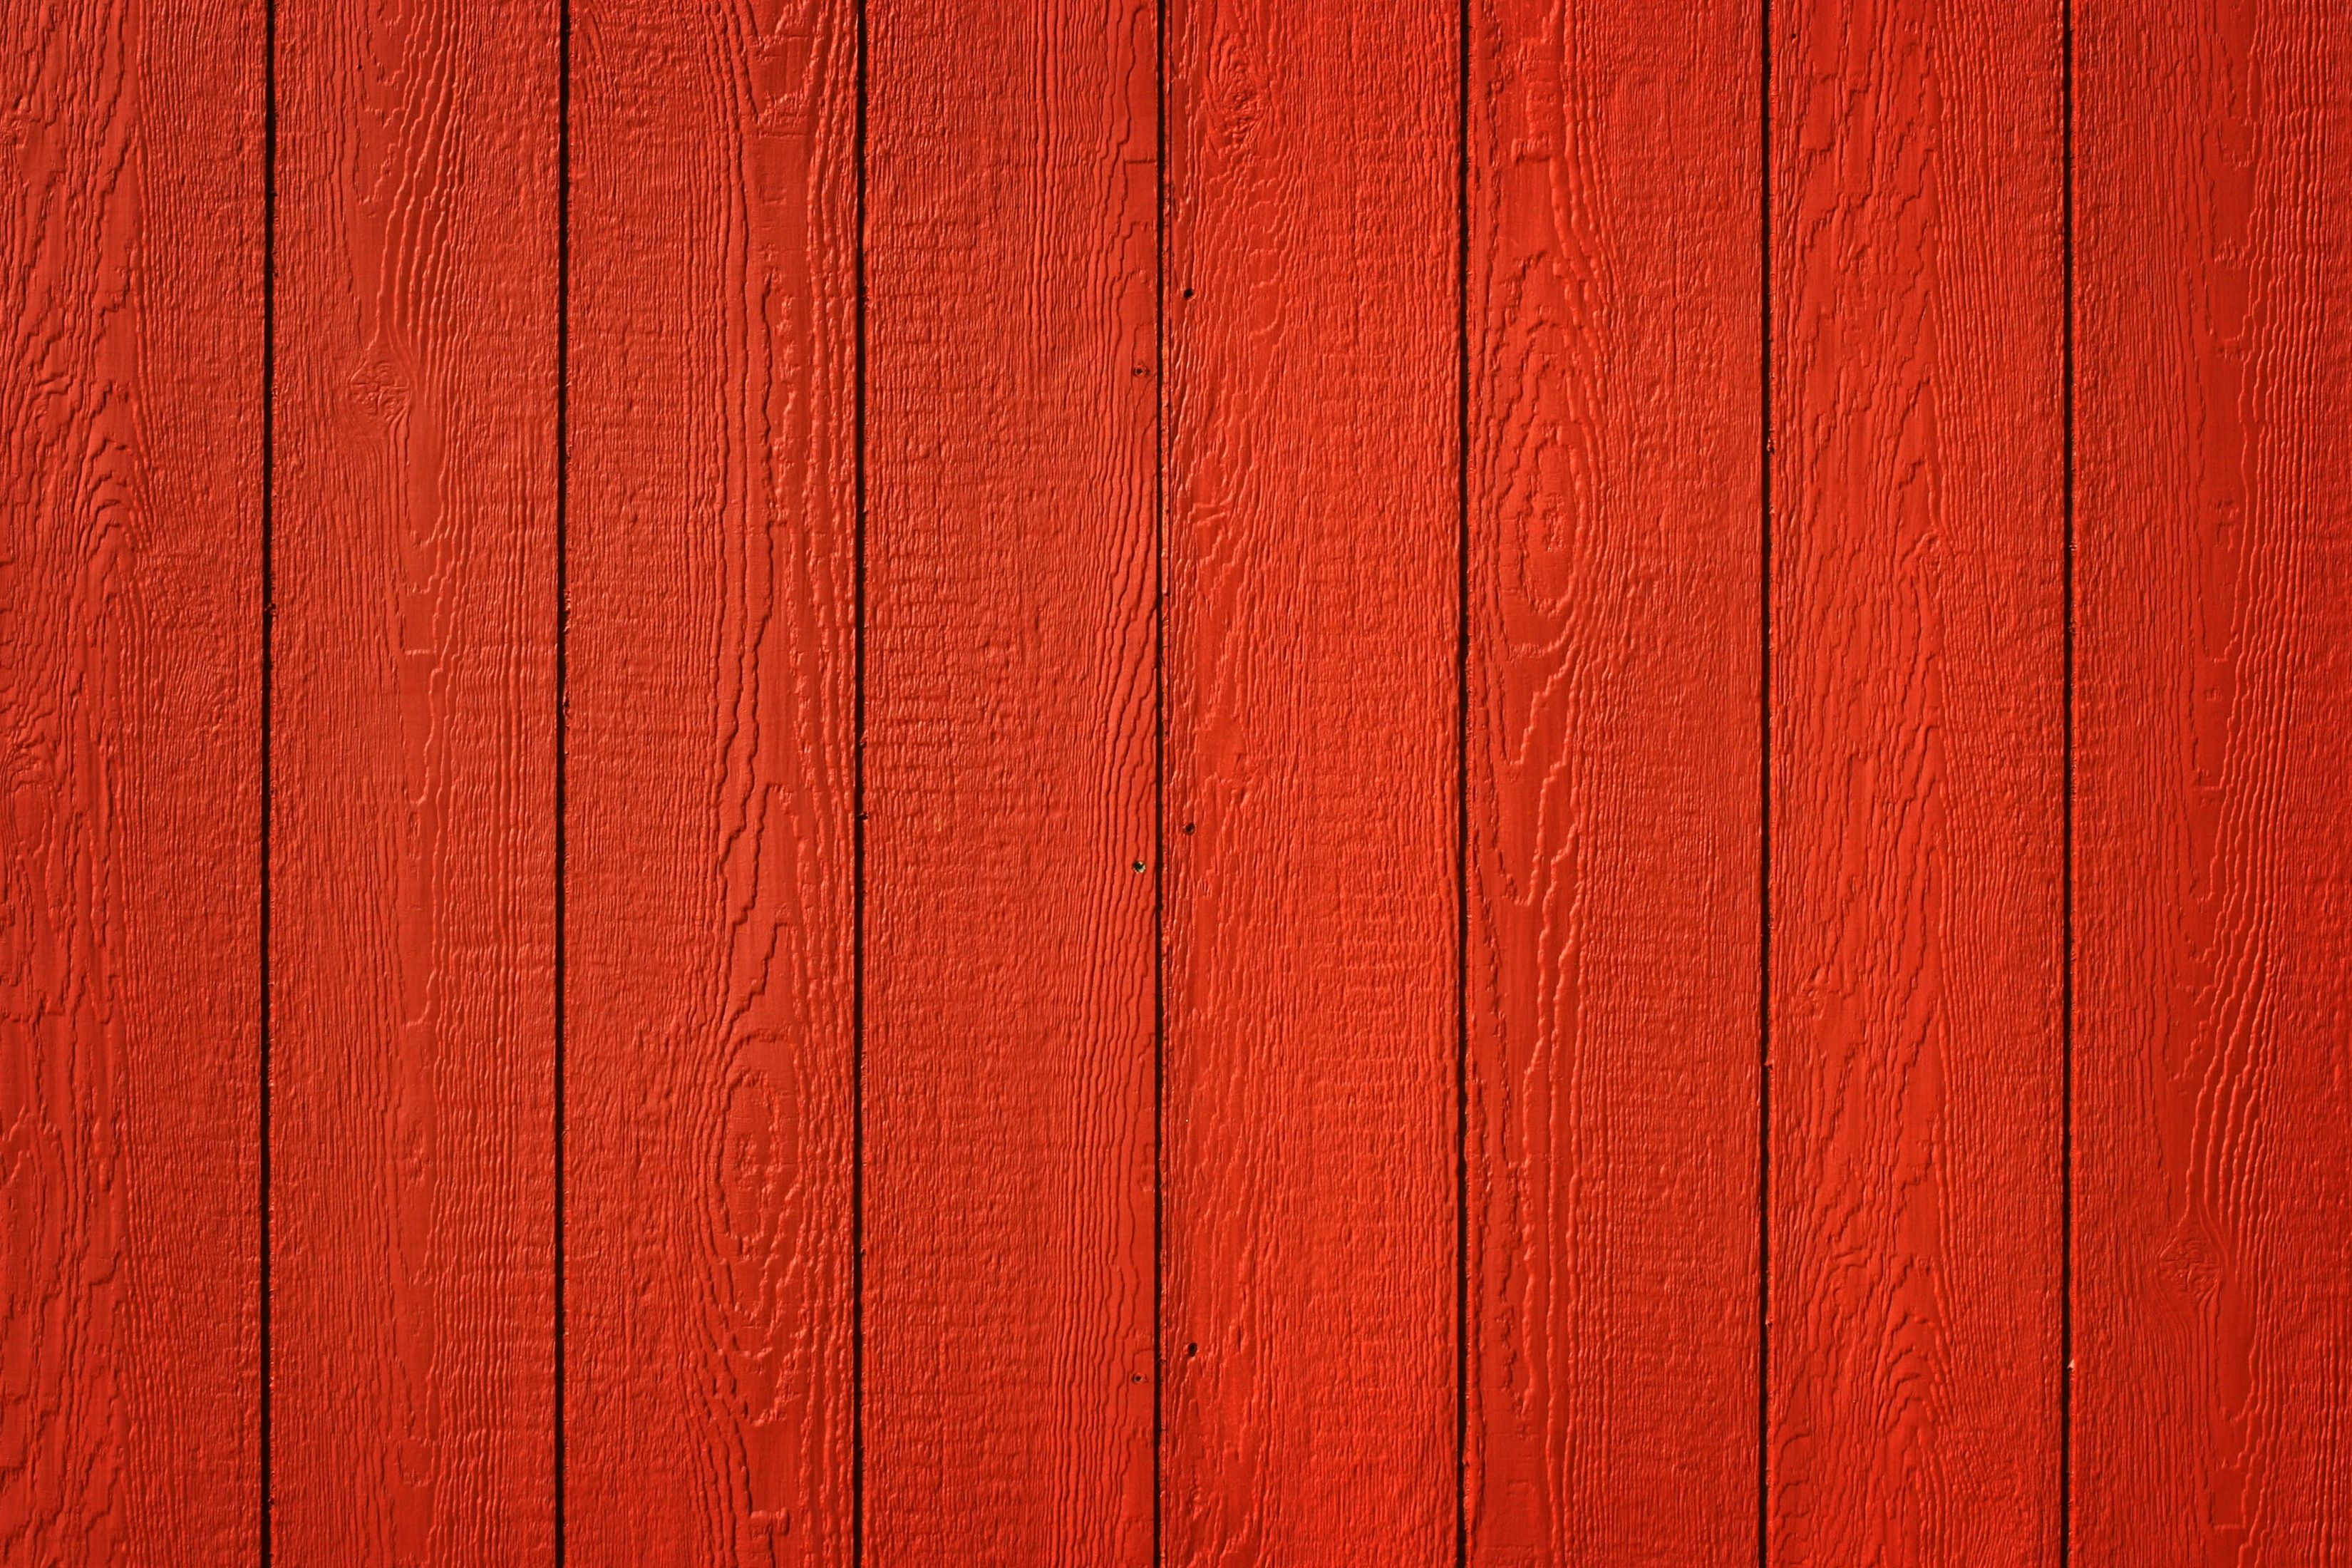 Red Barn Background free texture red barn wood | רקעים | pinterest | red barns